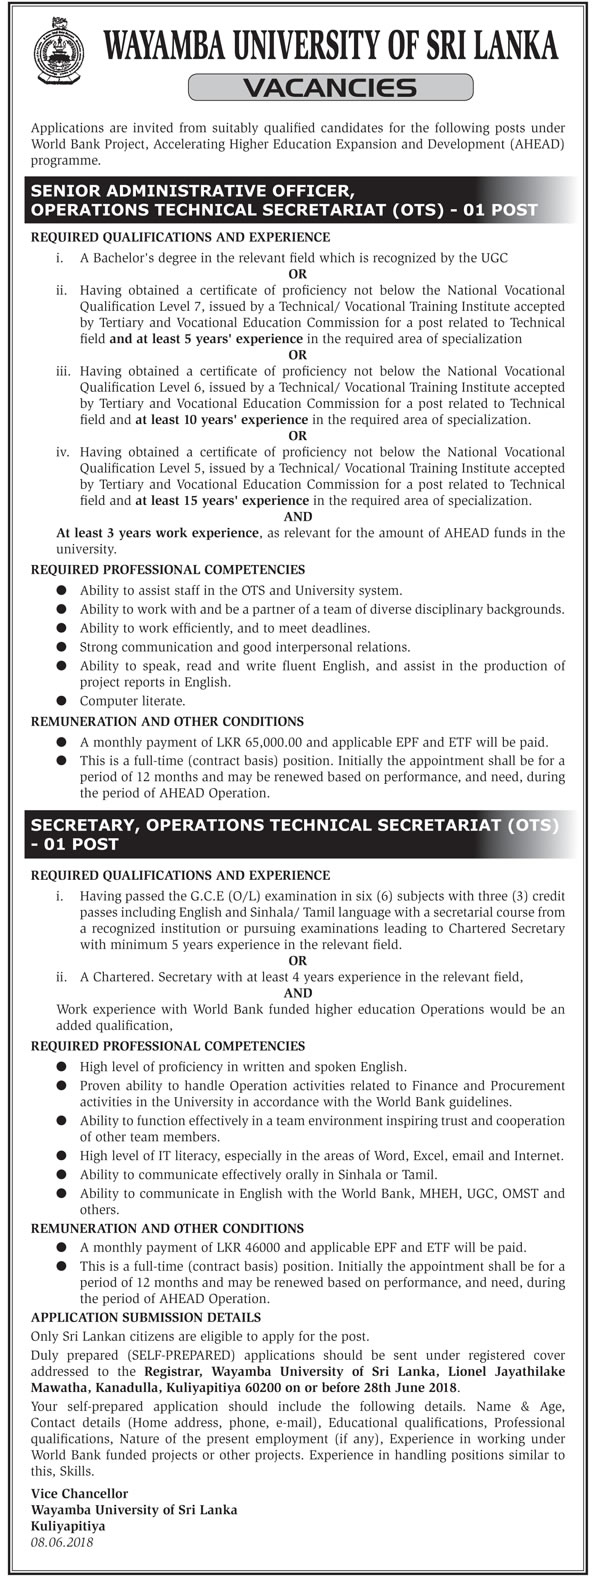 Senior Administrative Officer, Operations Technical Secretariat, Secretary Job Vacancy